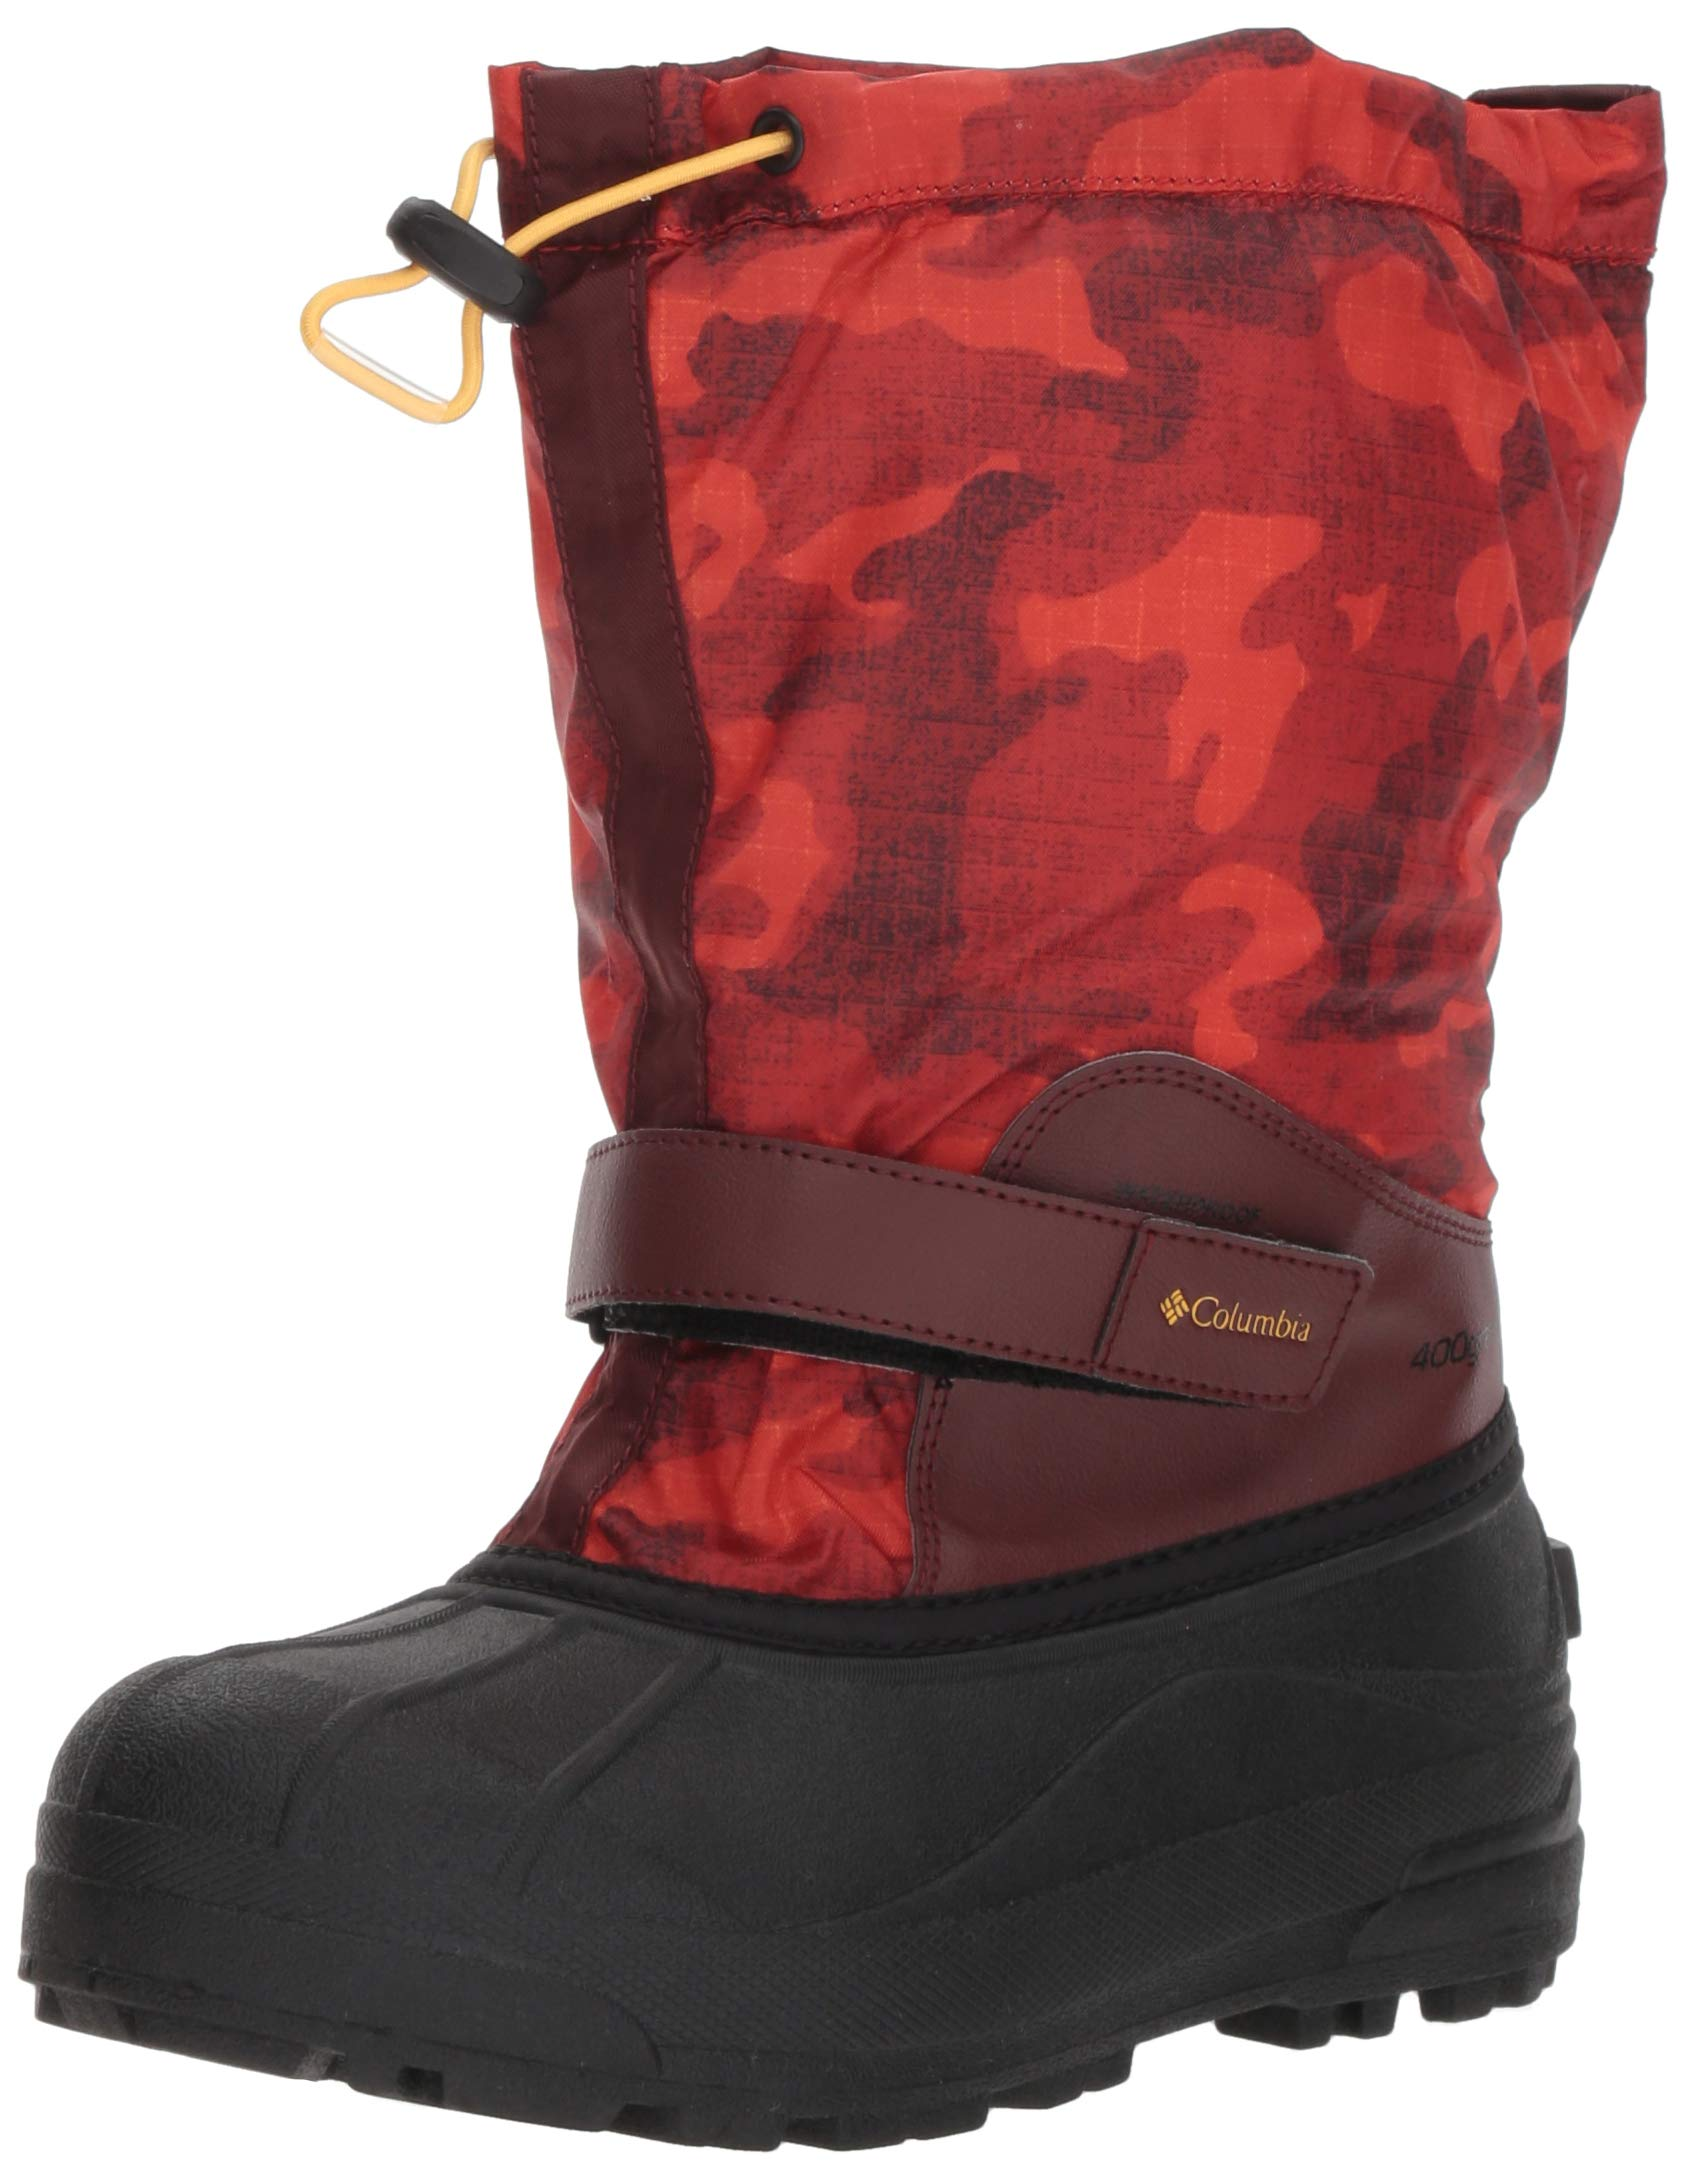 Columbia Boys' Youth Powderbug Forty Print Snow Boot, Madder Brown, Golden Nugget, 3 Regular US Little Kid